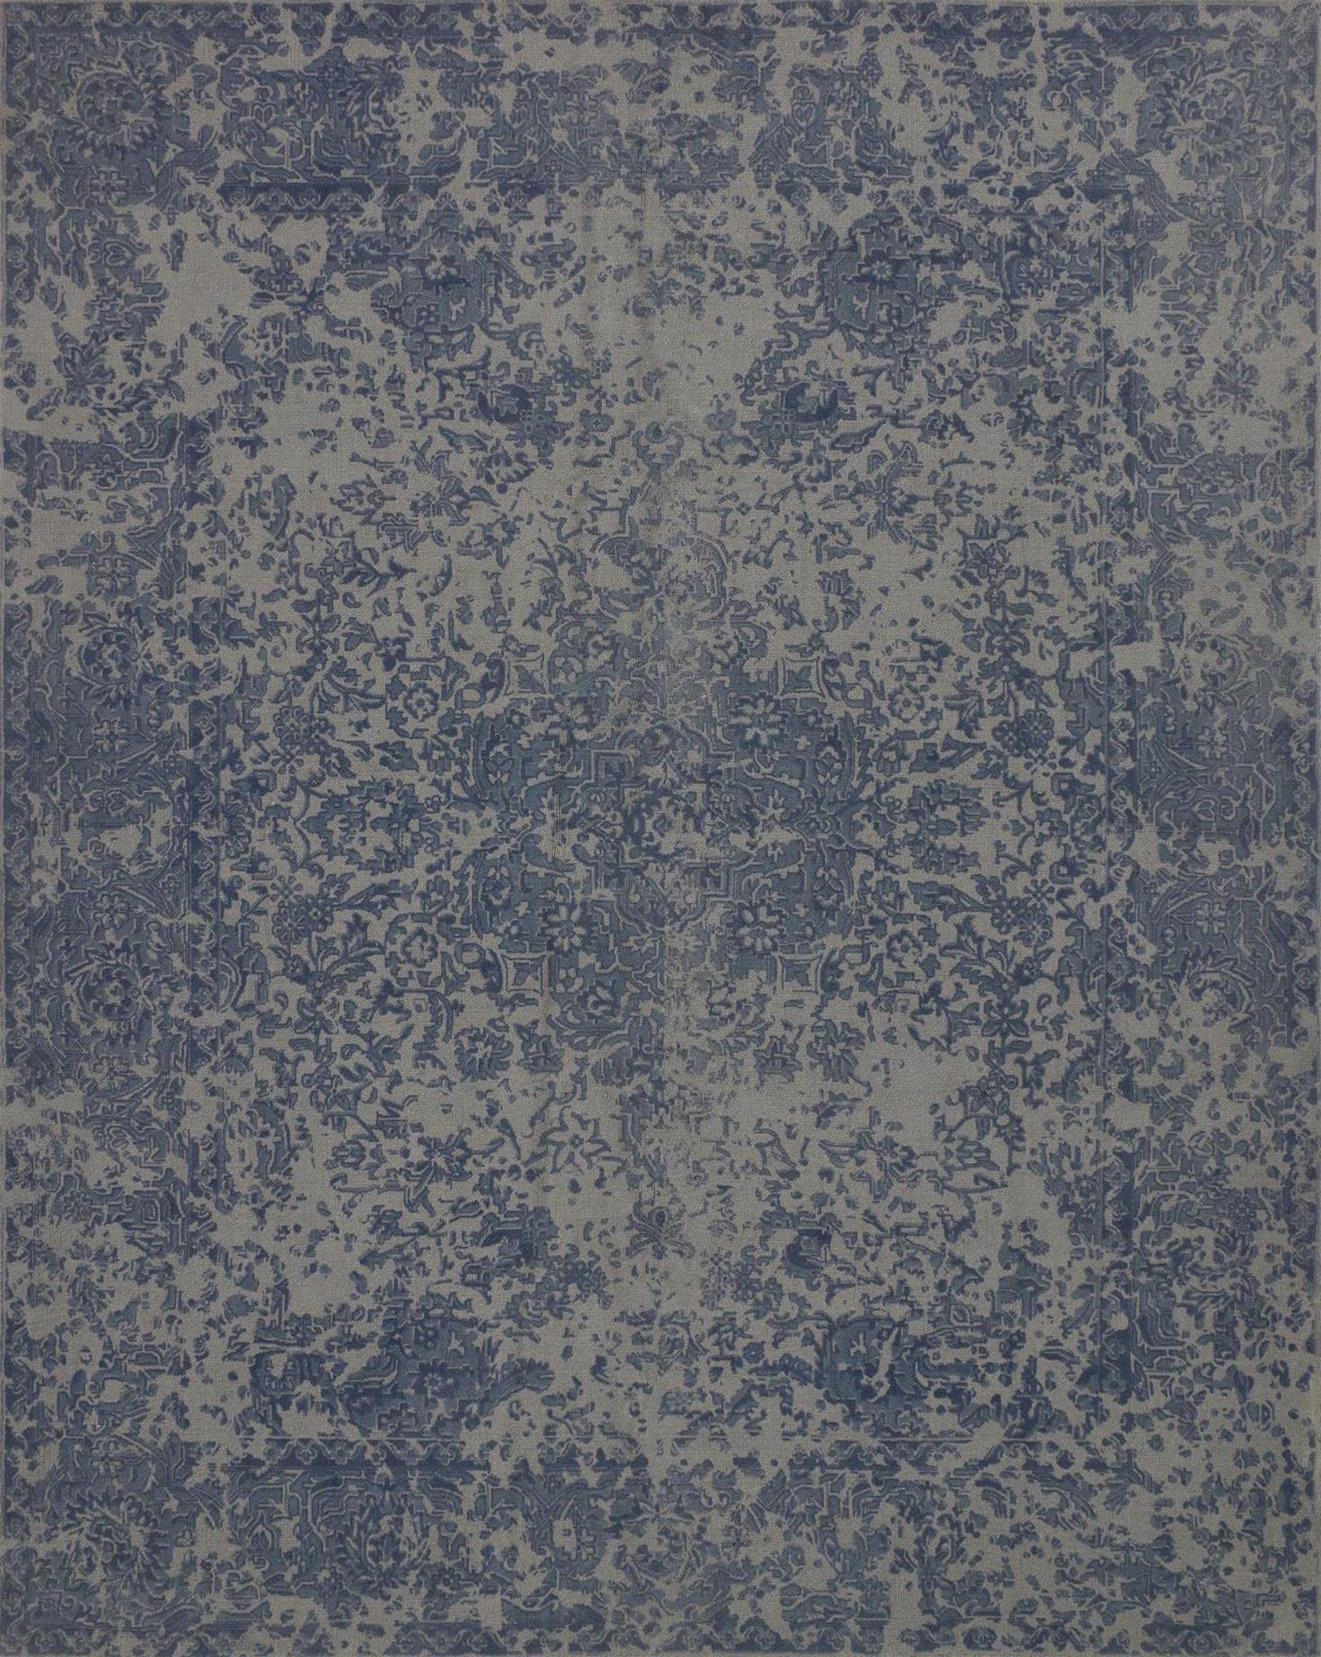 Lily Park Lp 01 Blue Area Rug Magnolia Home By Joanna